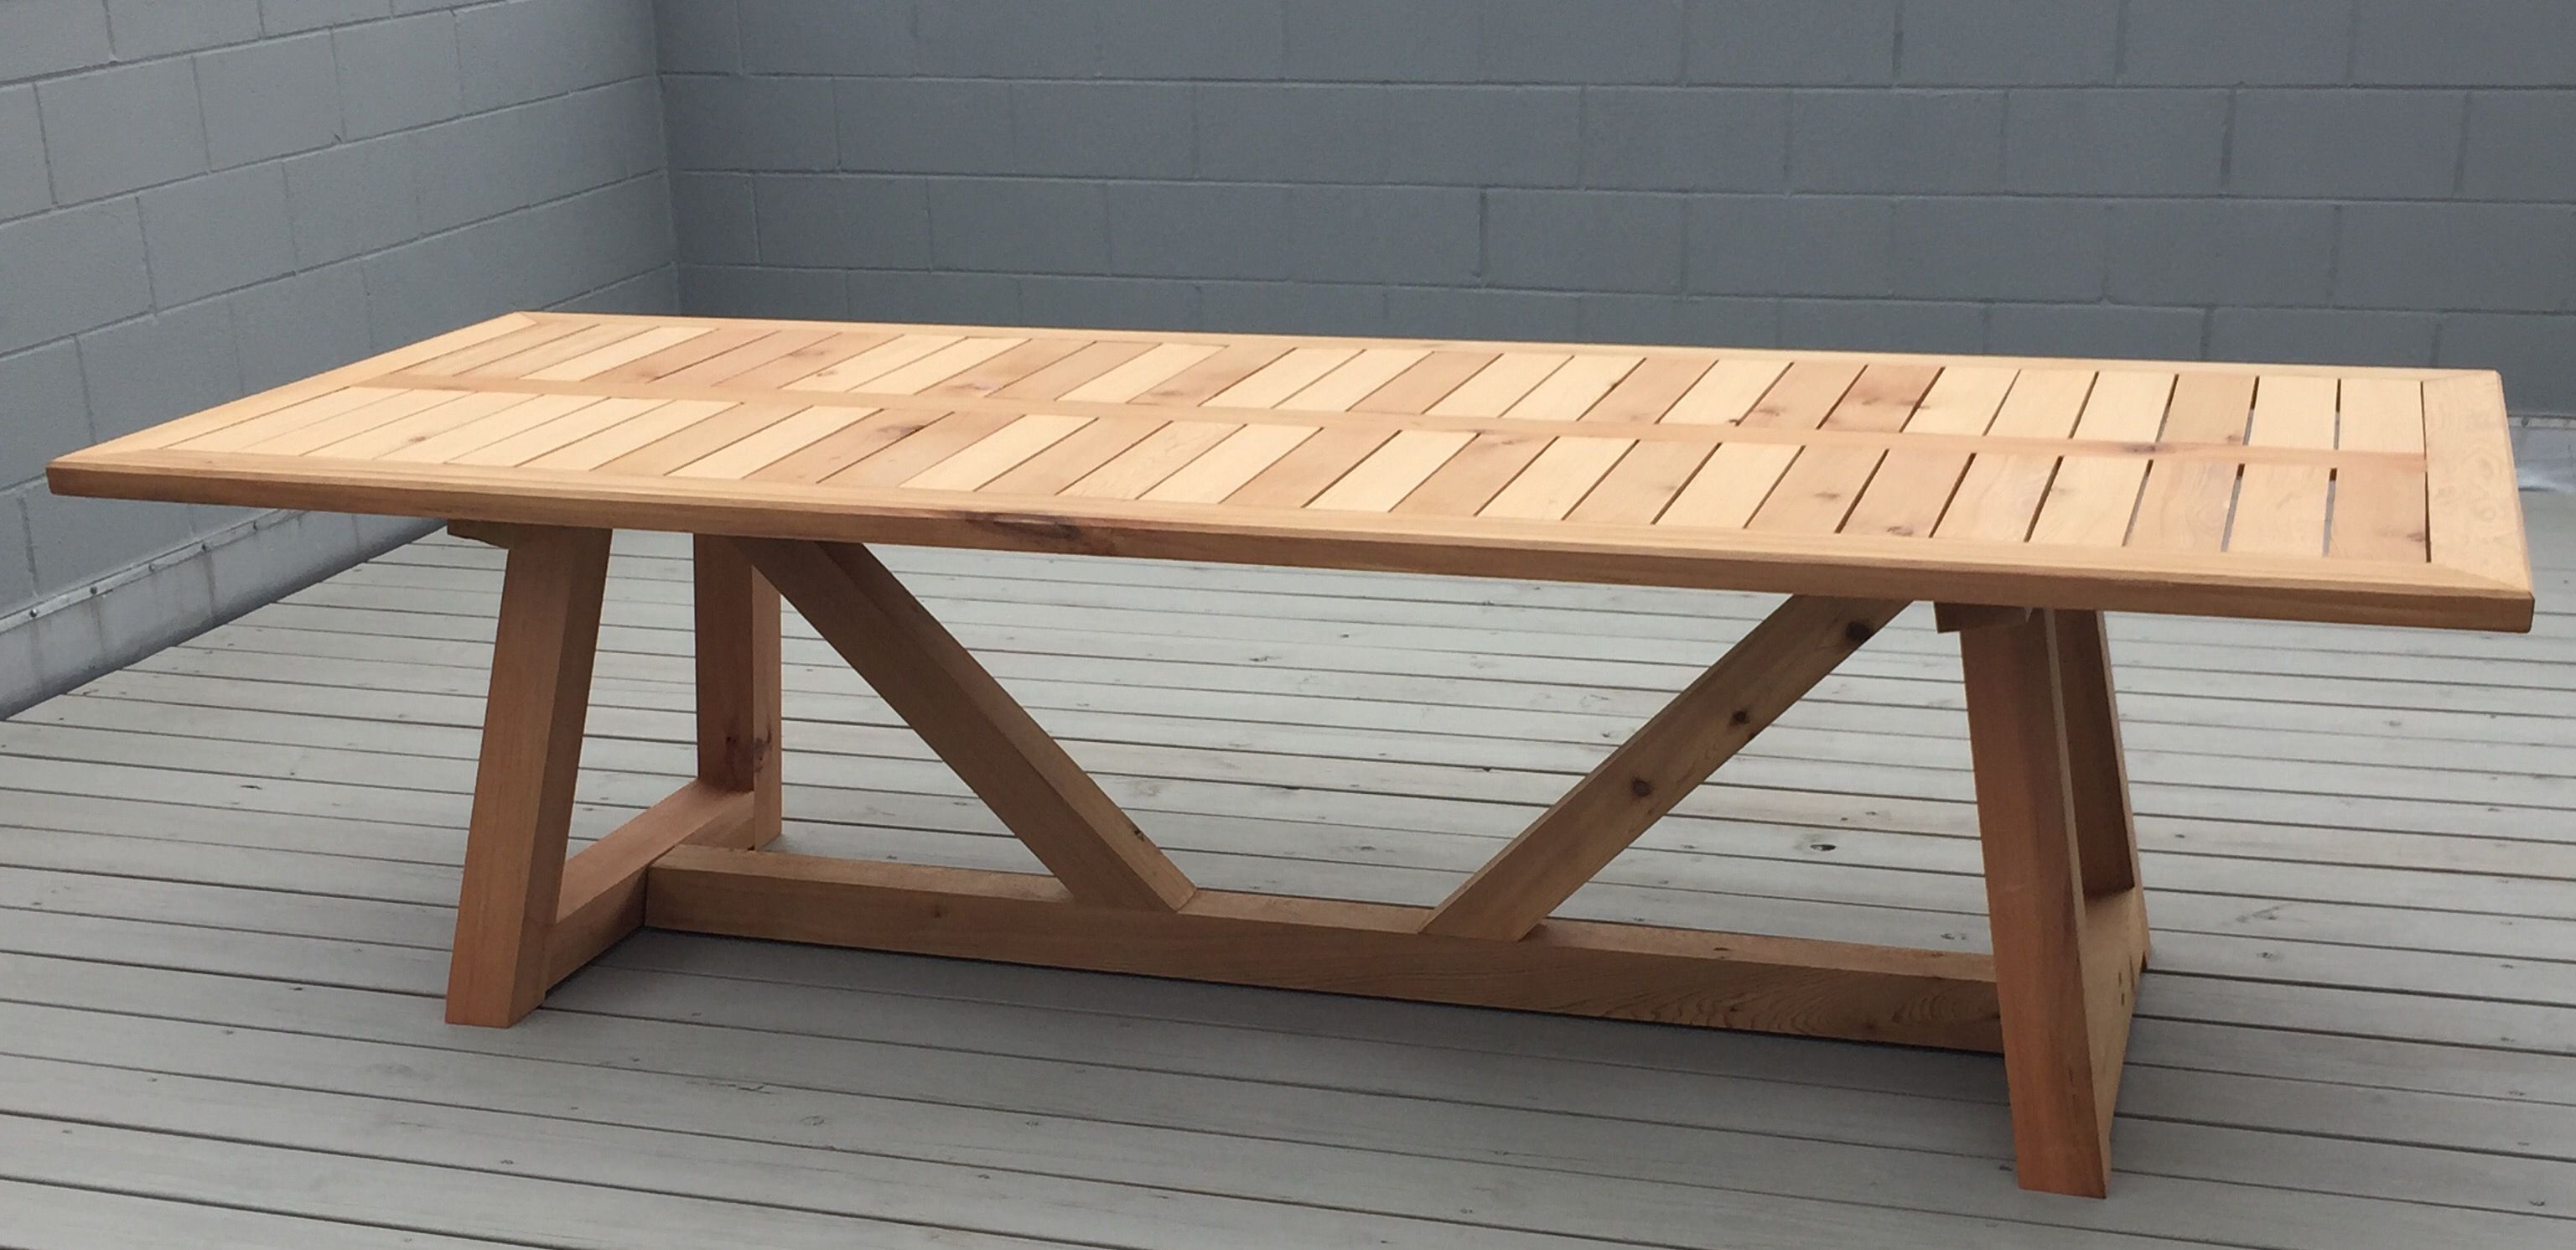 Western red cedar table top western red cedar live edge table top - Custom Made Western Red Cedar Outdoor Dining Table